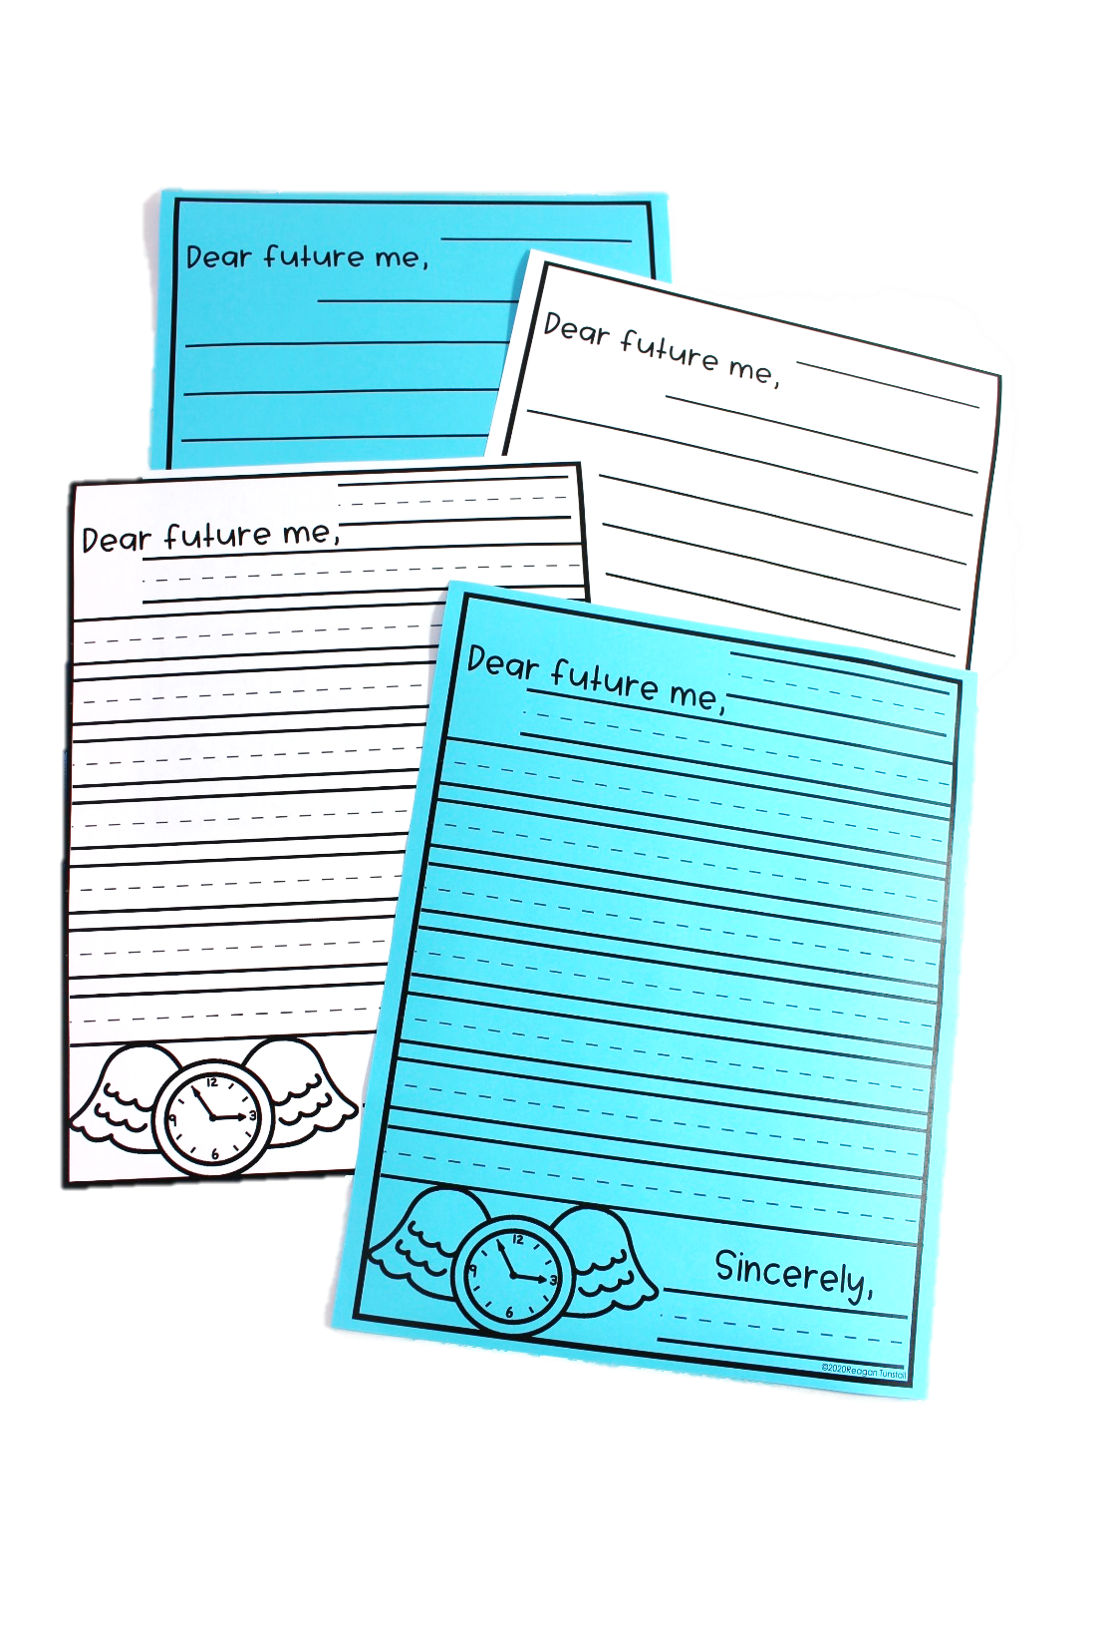 where students can write a letter to their future selves to open on the next leap year! This is a fun way to see what students think will be important to tell themselves!